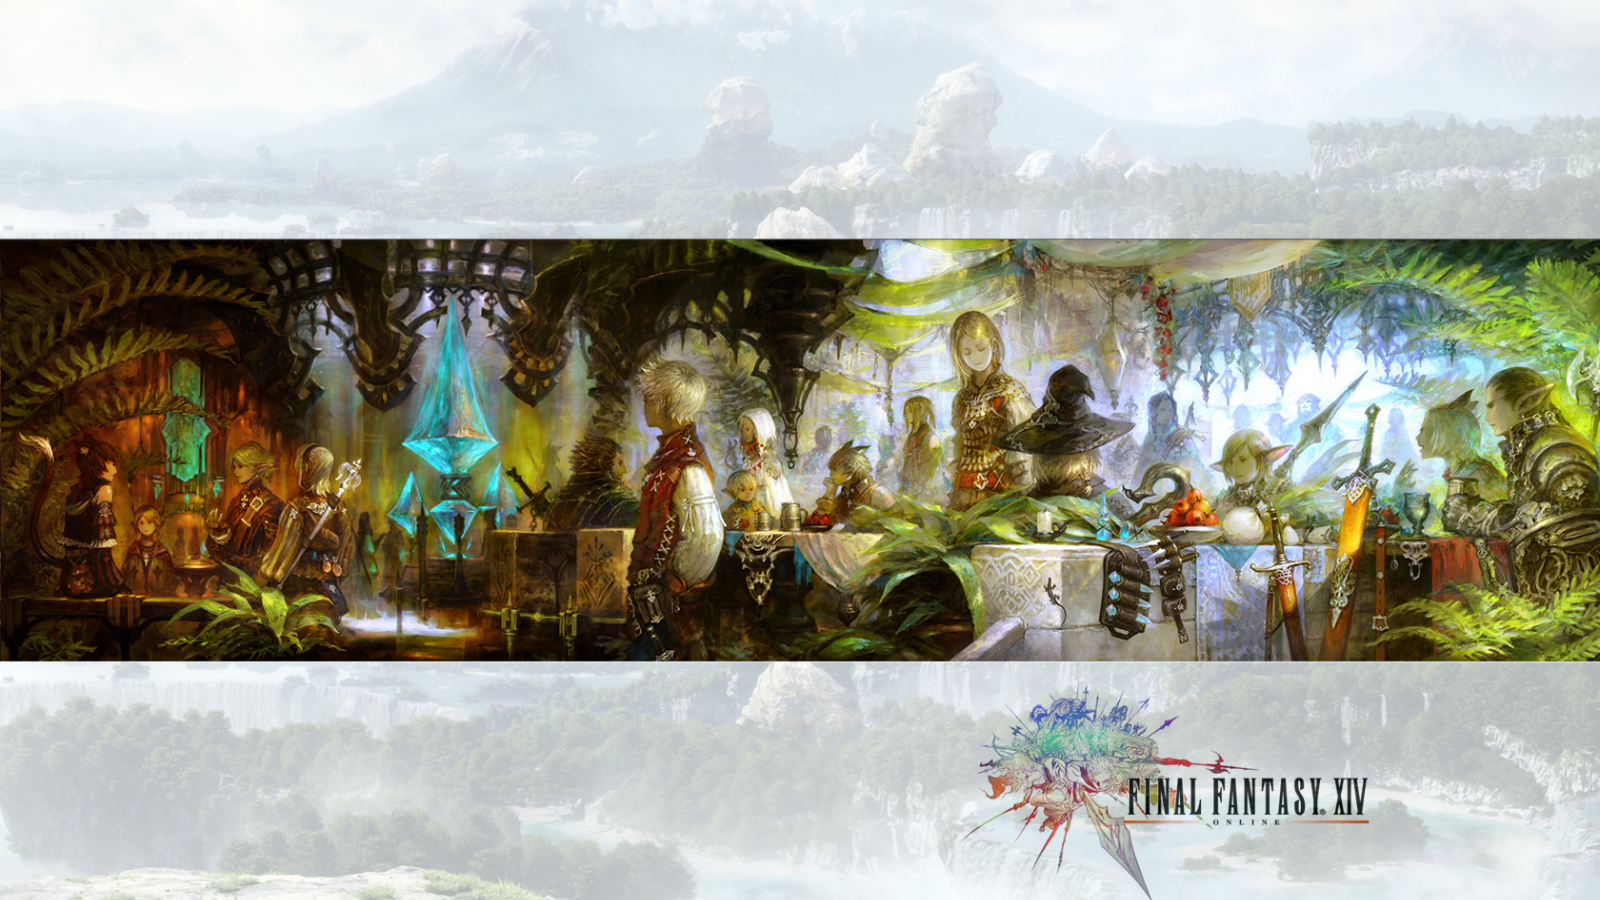 Free Download Images Final Fantasy Xiv Wallpapers Hd 3696